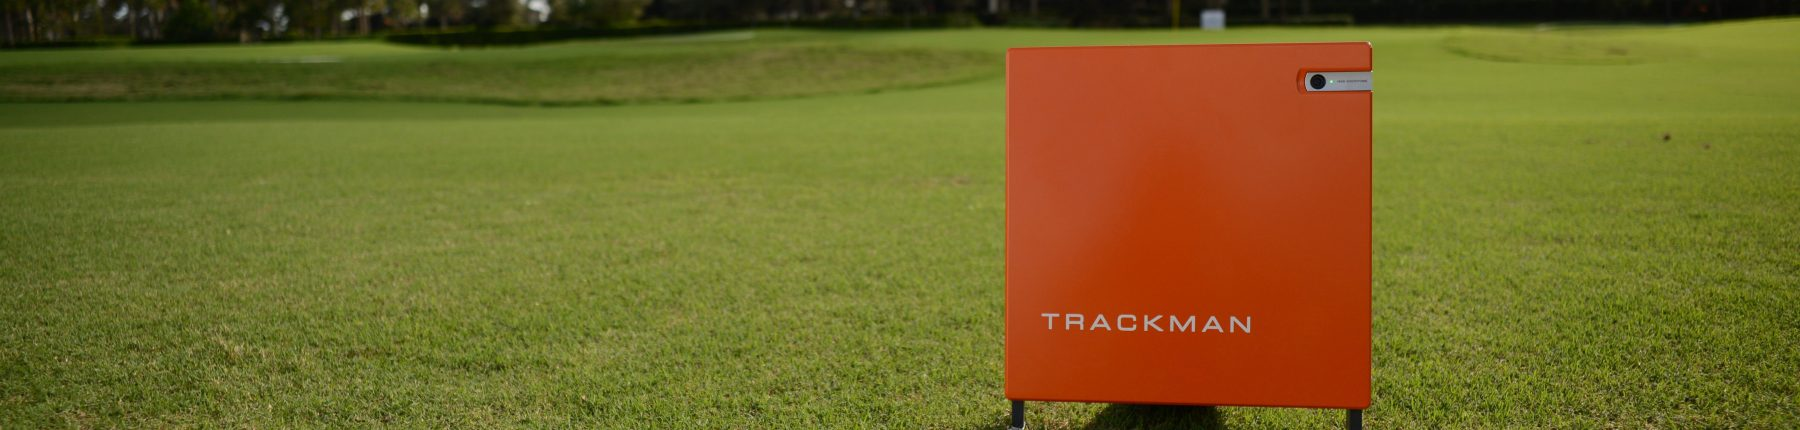 A Trackman golf tracker device placed on the grass.